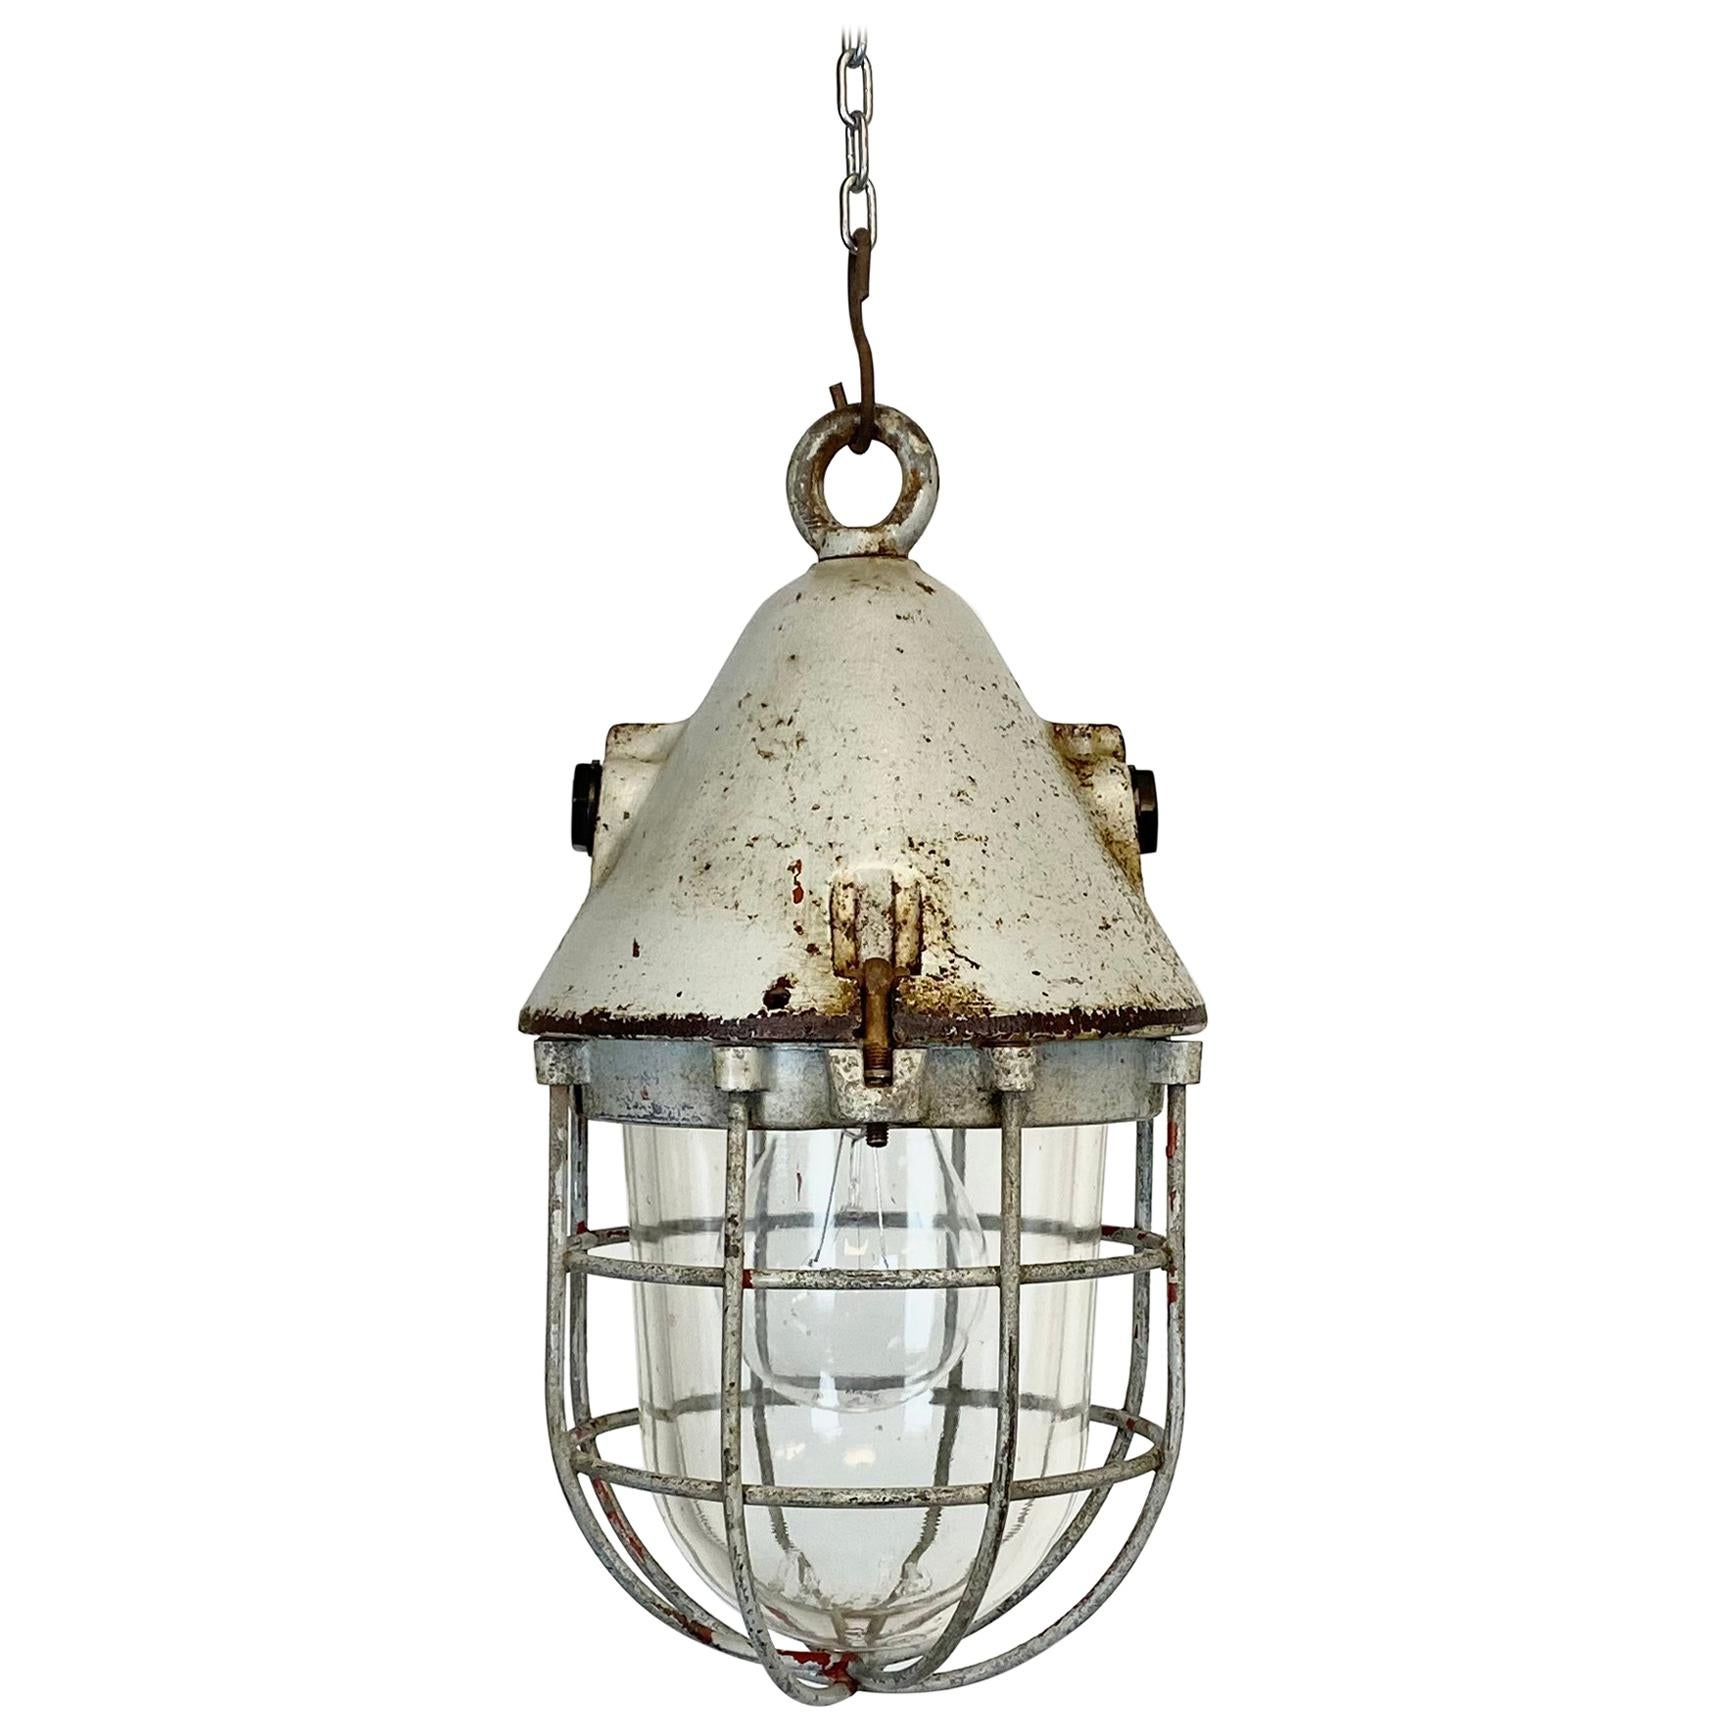 Grey Explosion-Proof Factory Bunker Cage Lamp from EOW, 1960s